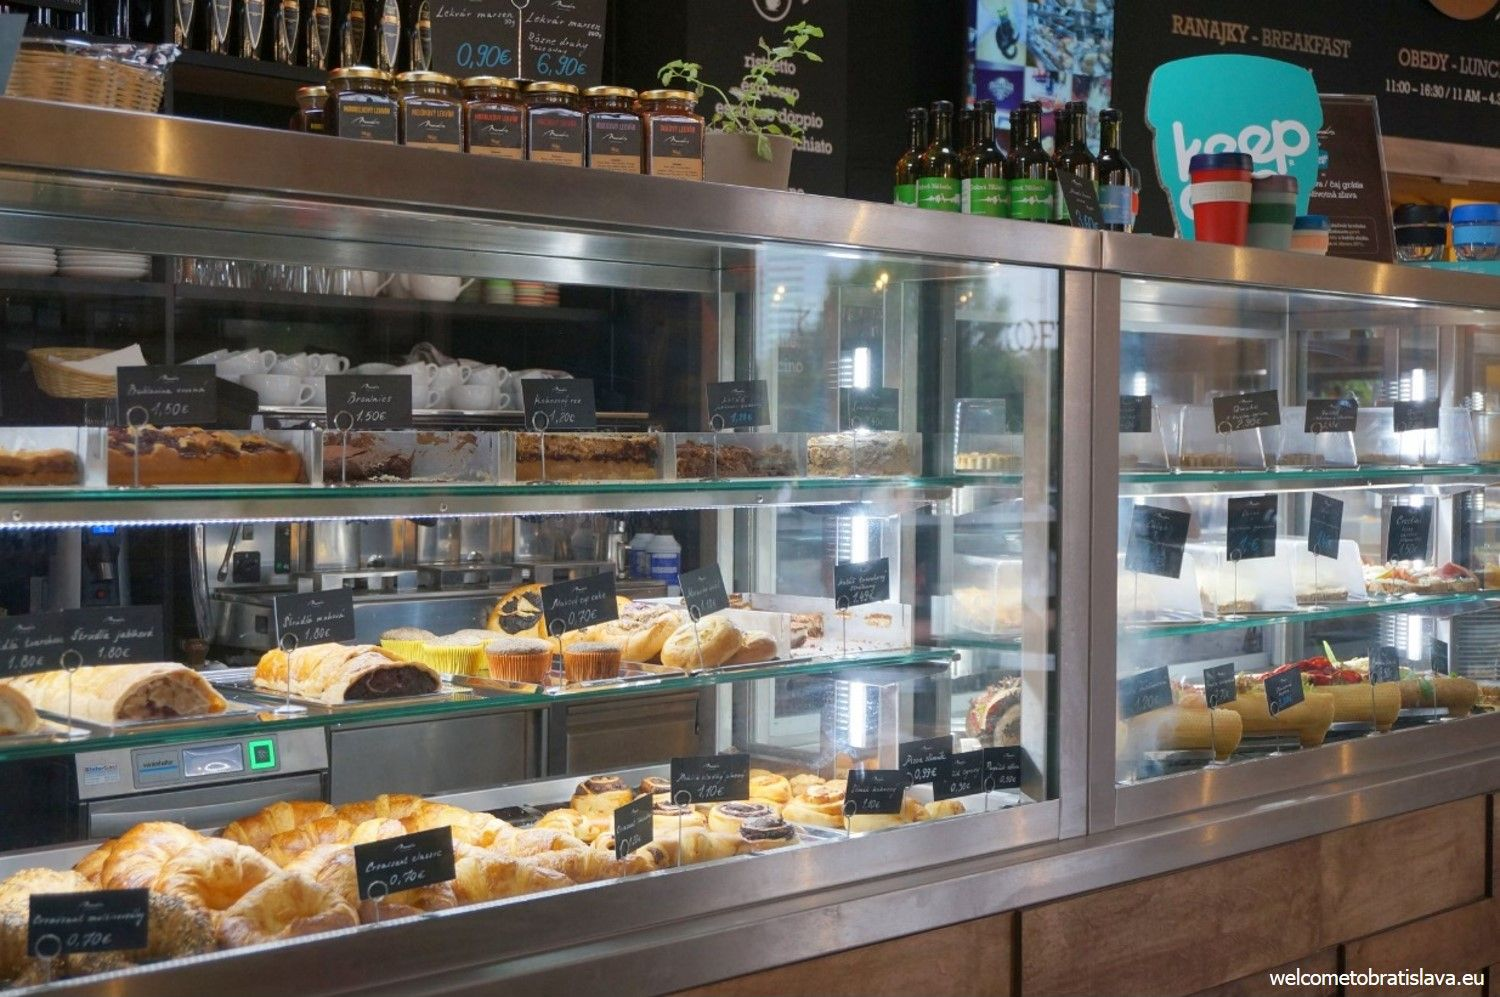 All the fresh pastry can be checked in the large glass boxes that are on the main bar